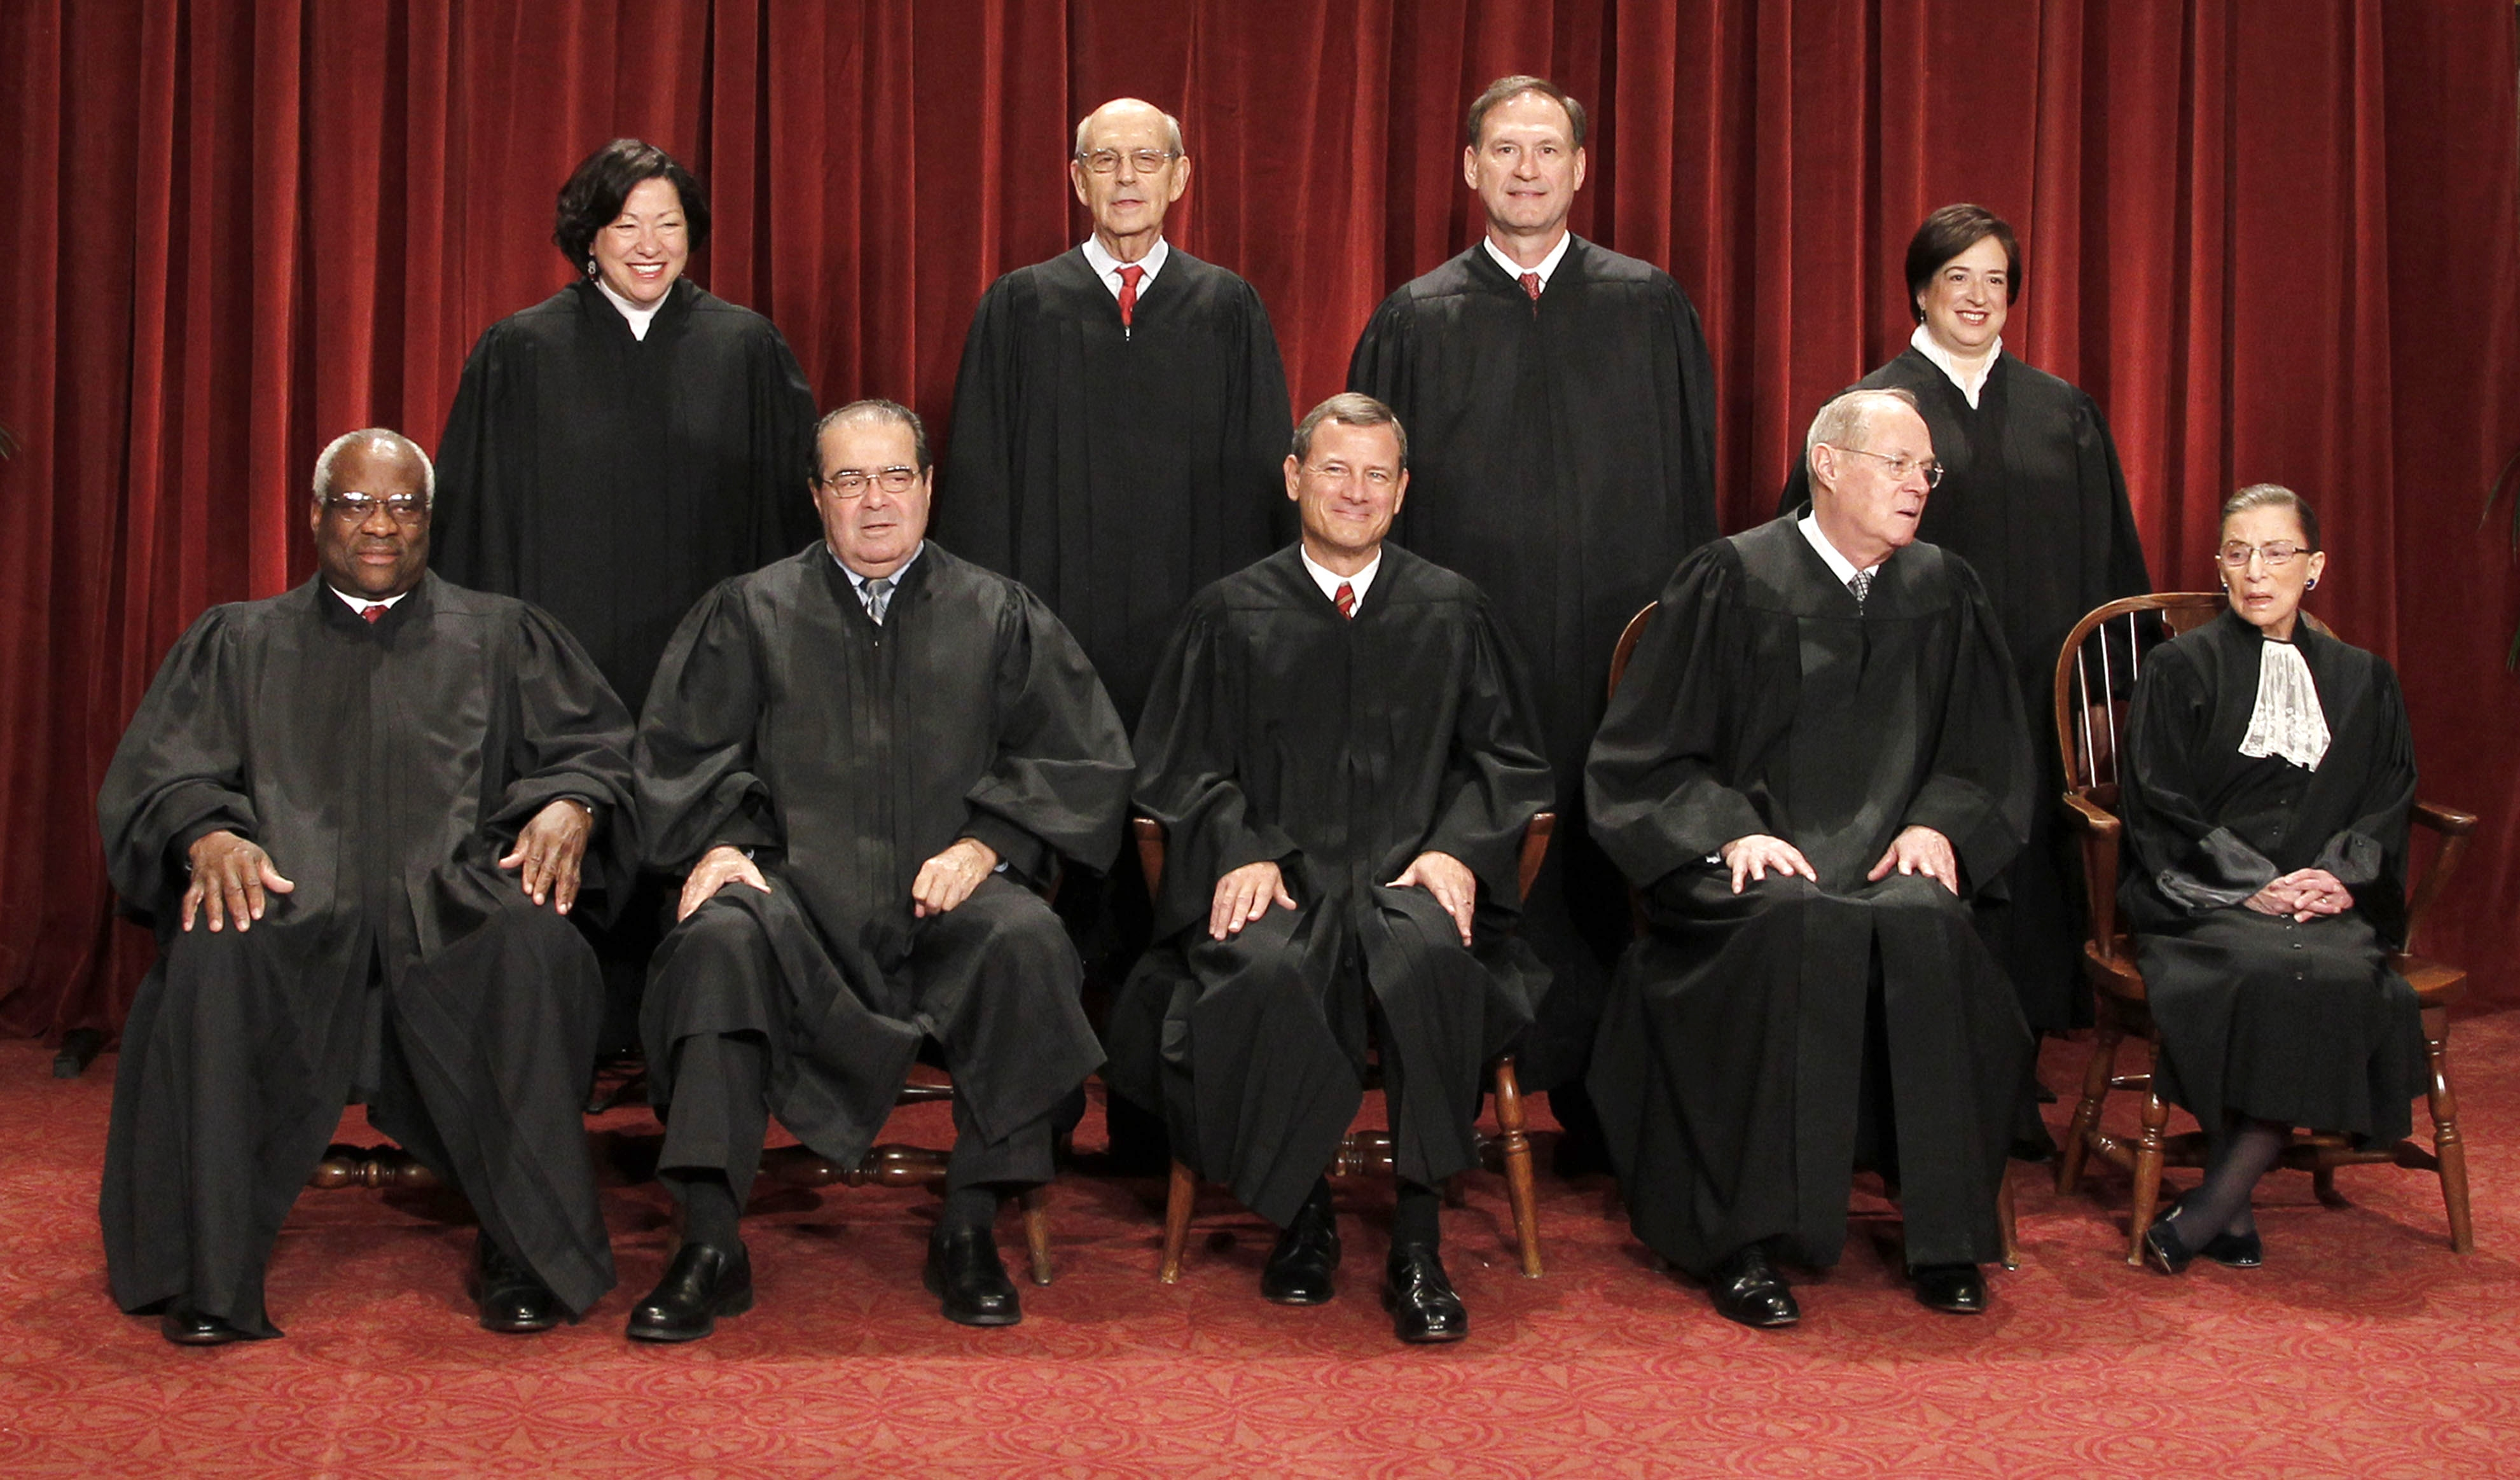 Campaign finance, affirmative action, prayer and abortion cases all are on the calendar for the Supreme Court. (AP photo)